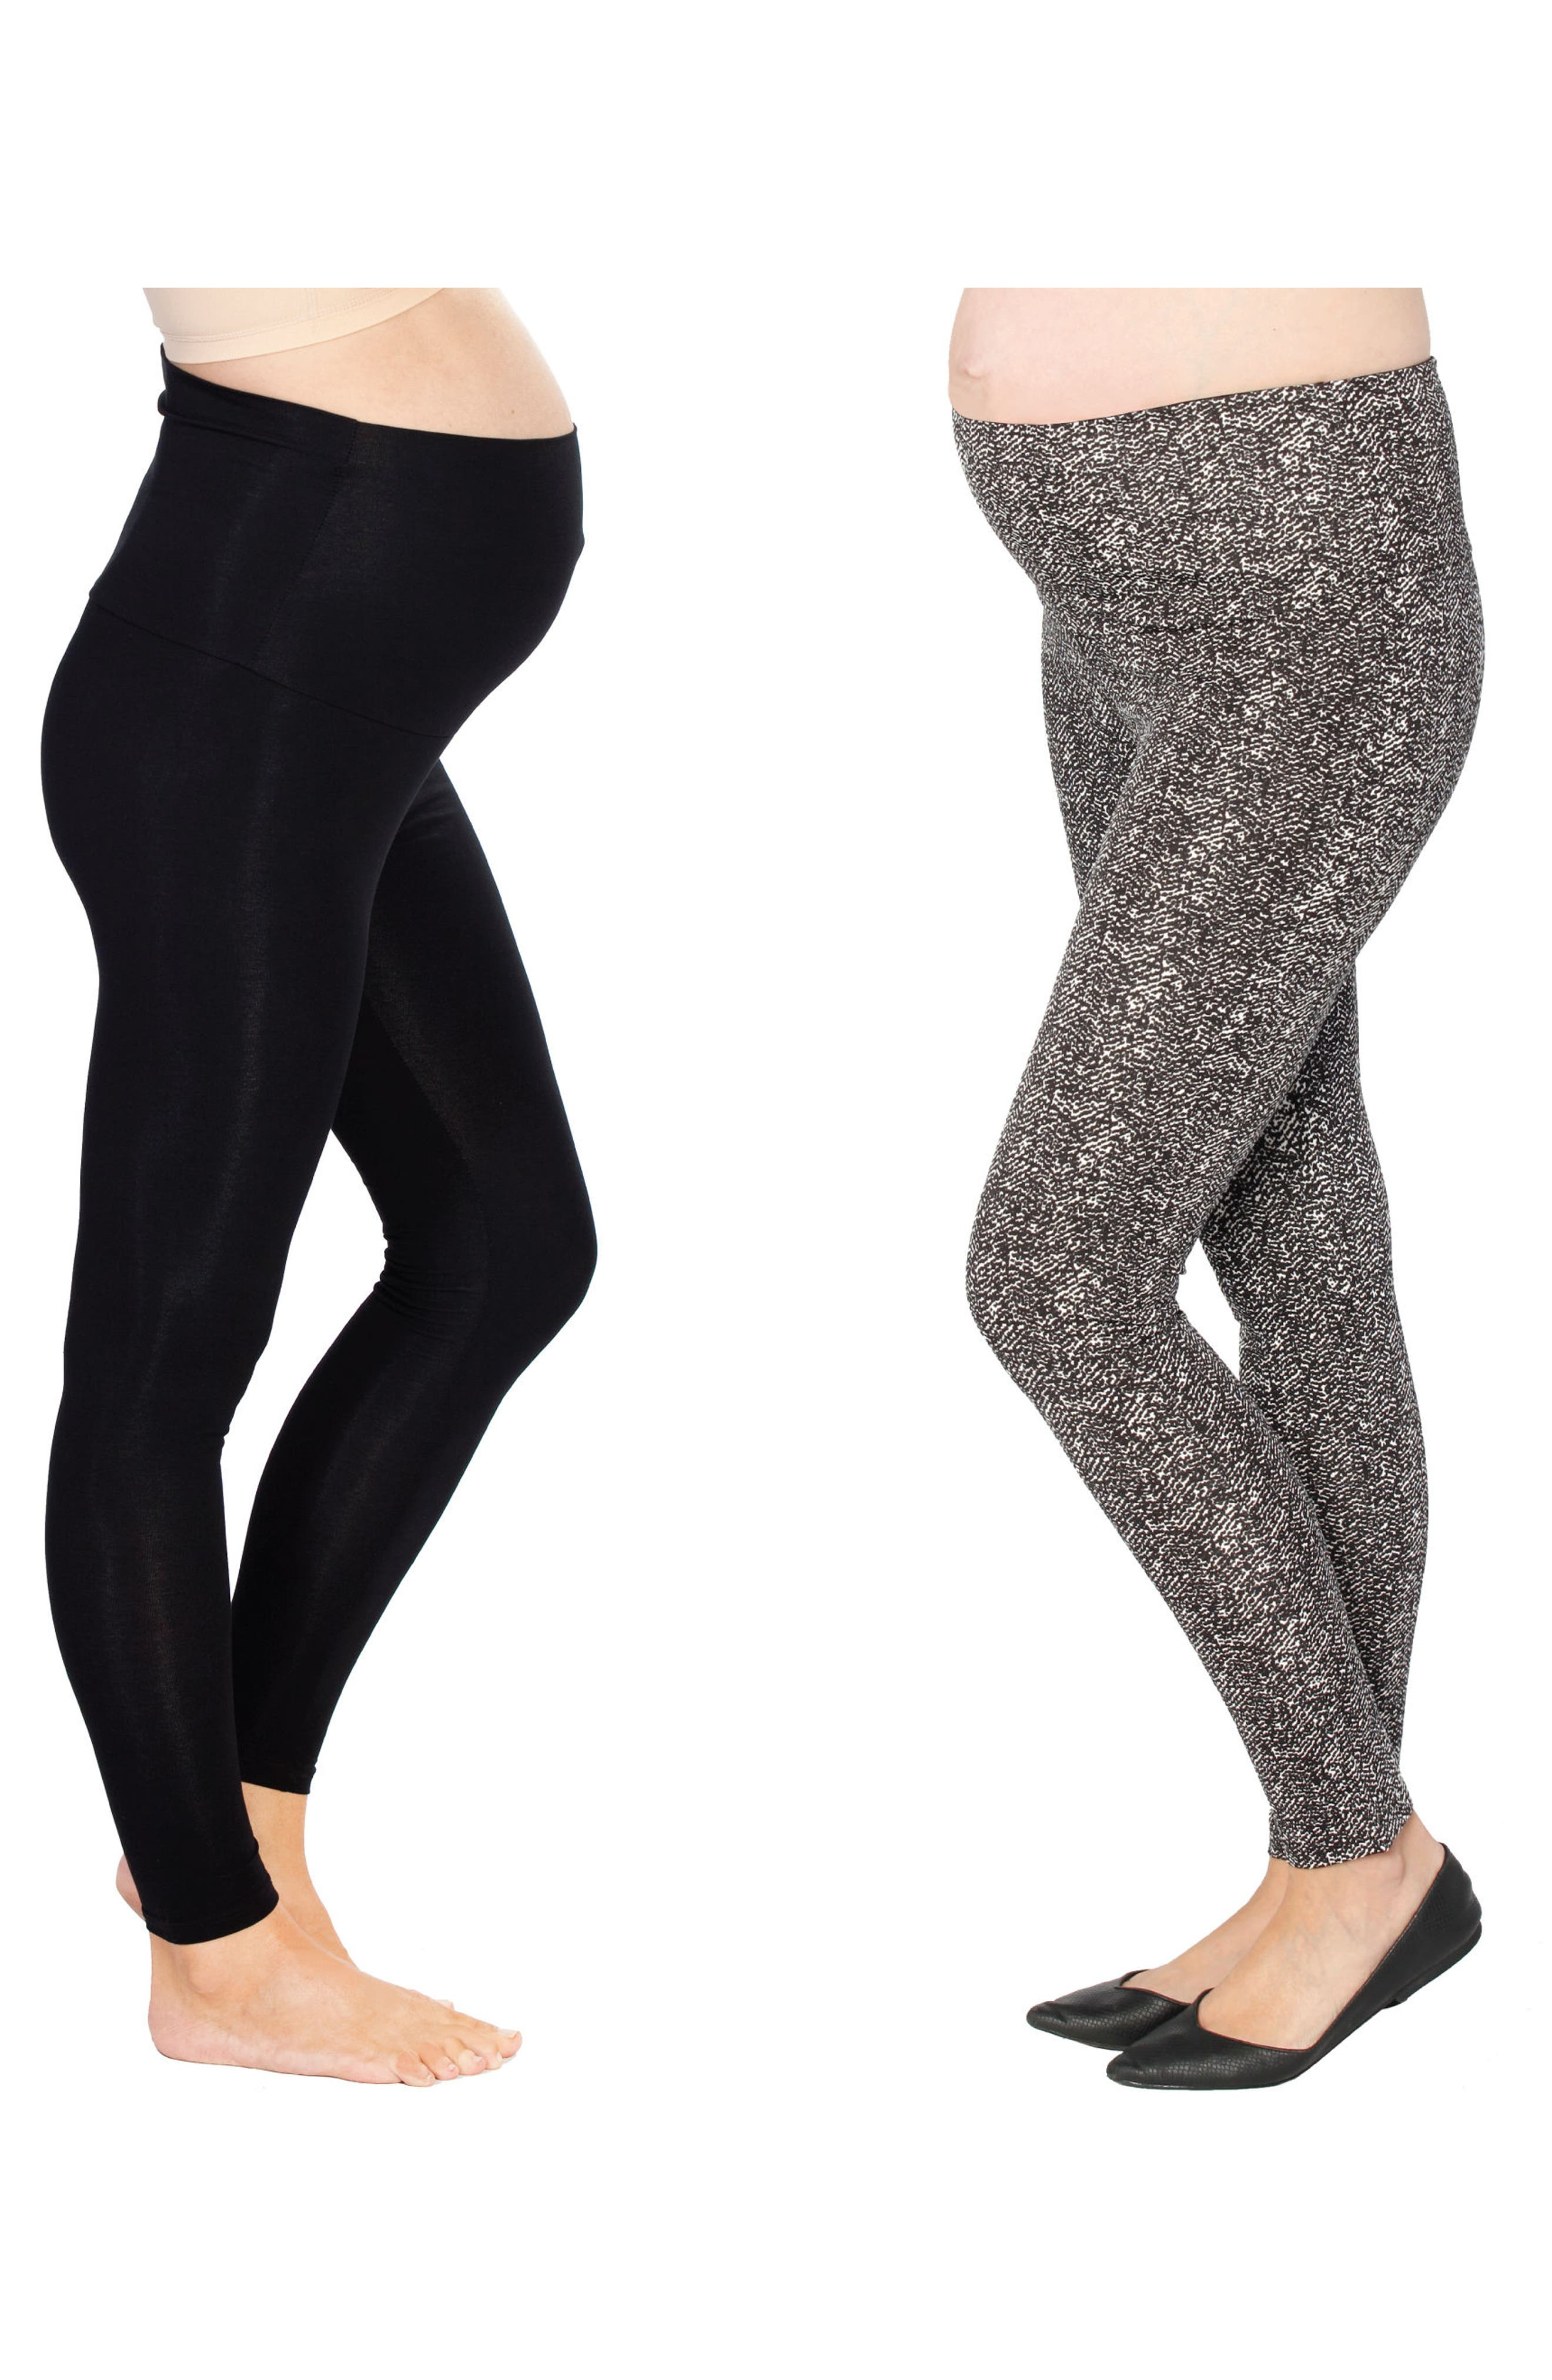 Set of 2 Maternity Leggings,                             Alternate thumbnail 2, color,                             Print/ Black